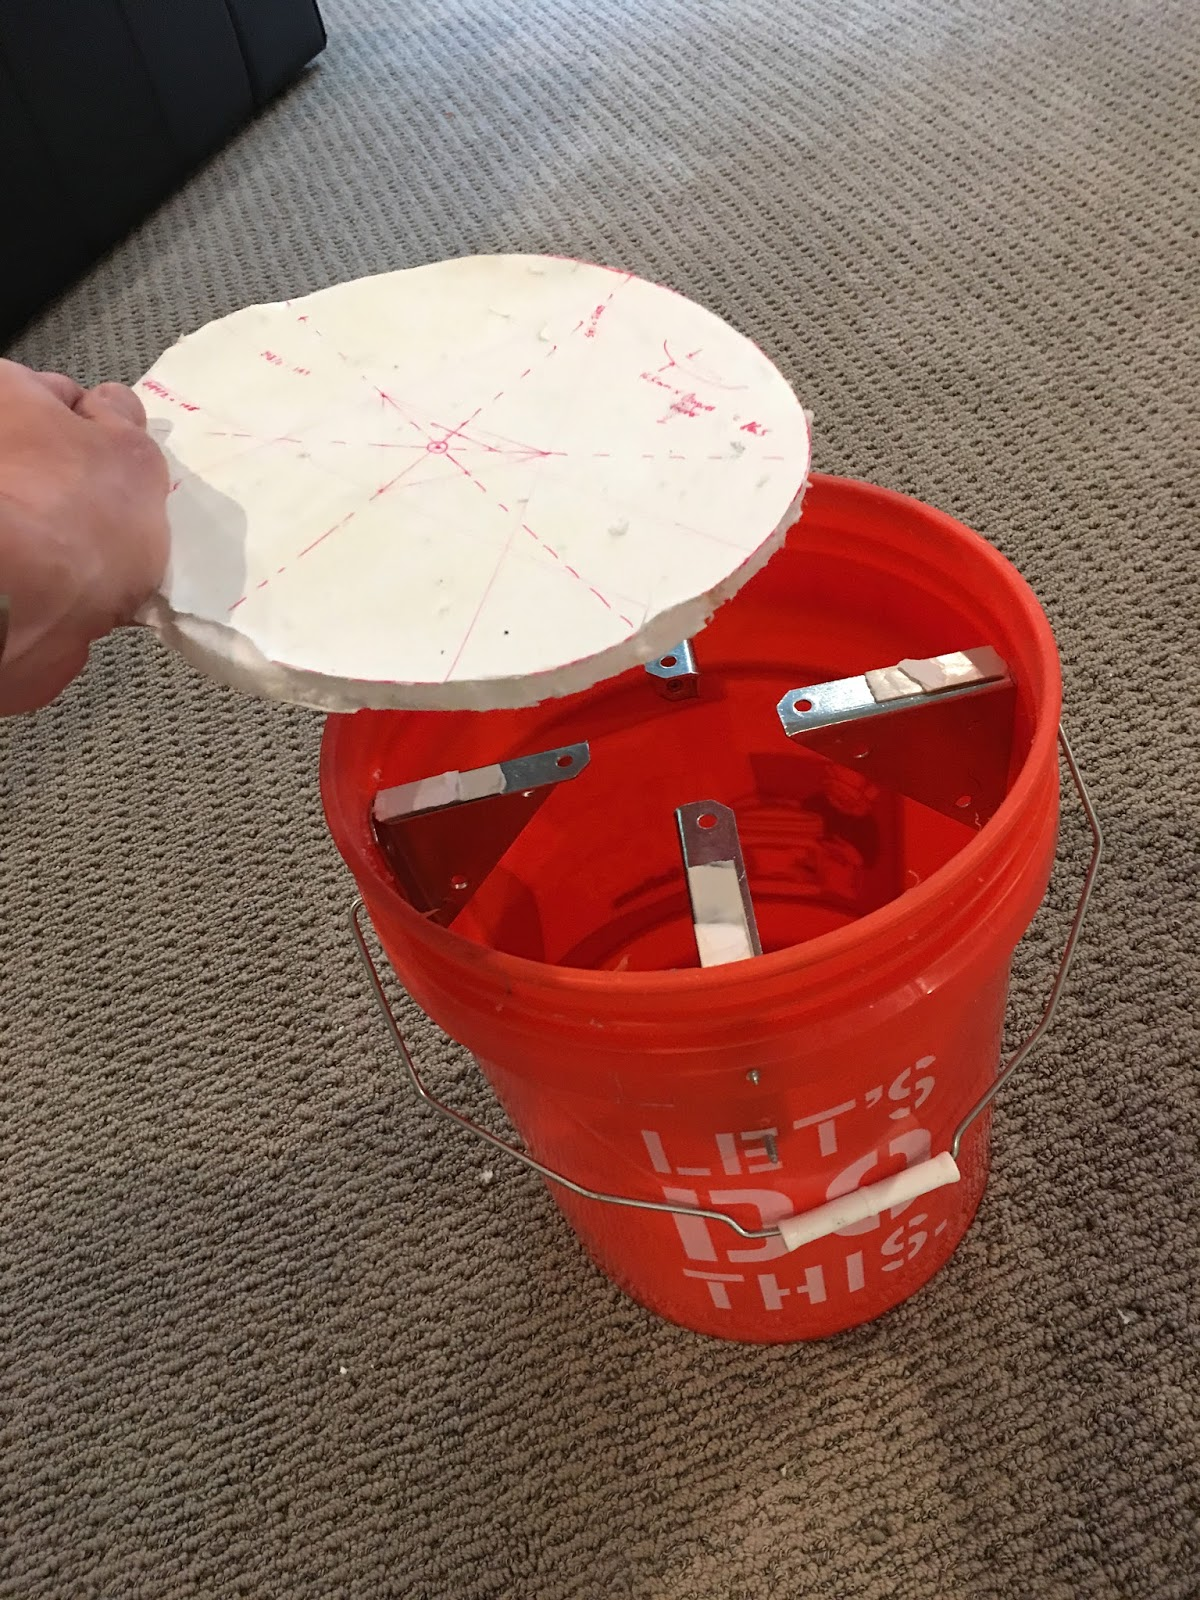 Inserting upper side of mold into bucket. Metal brackets are covered with foam tape. This whole assembly will be turned upside down during molding. Foamcore board is a little chewed up because I took this pic after de-molding 2 pads.